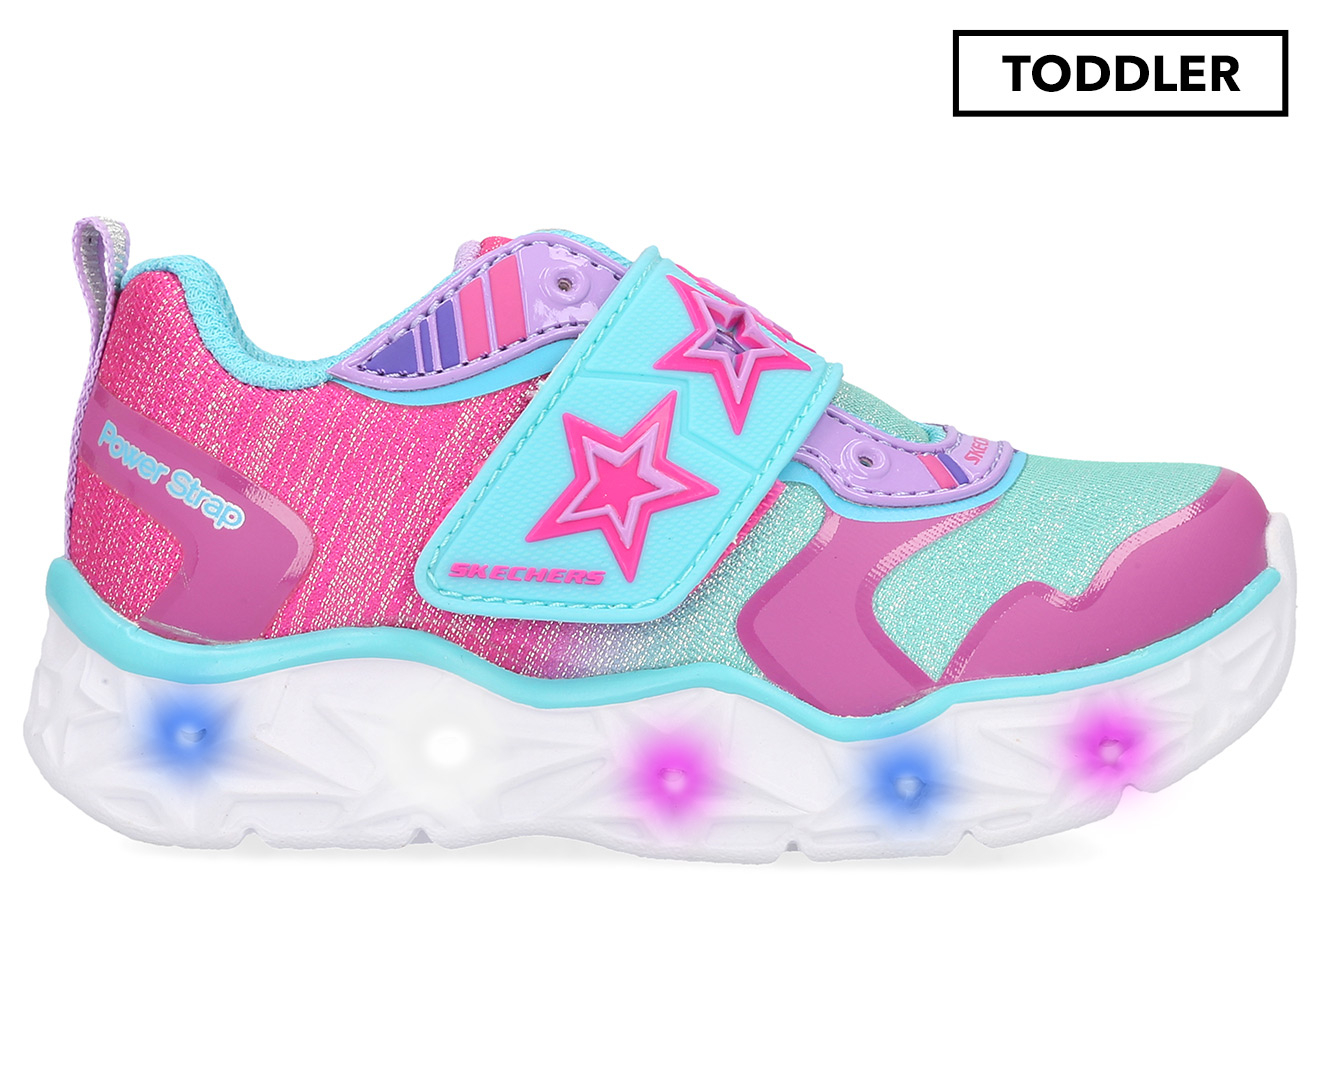 Details about Skechers Toddler Girls' Galaxy Lights Cosmic Kicks Shoe Neon PinkTurquoise